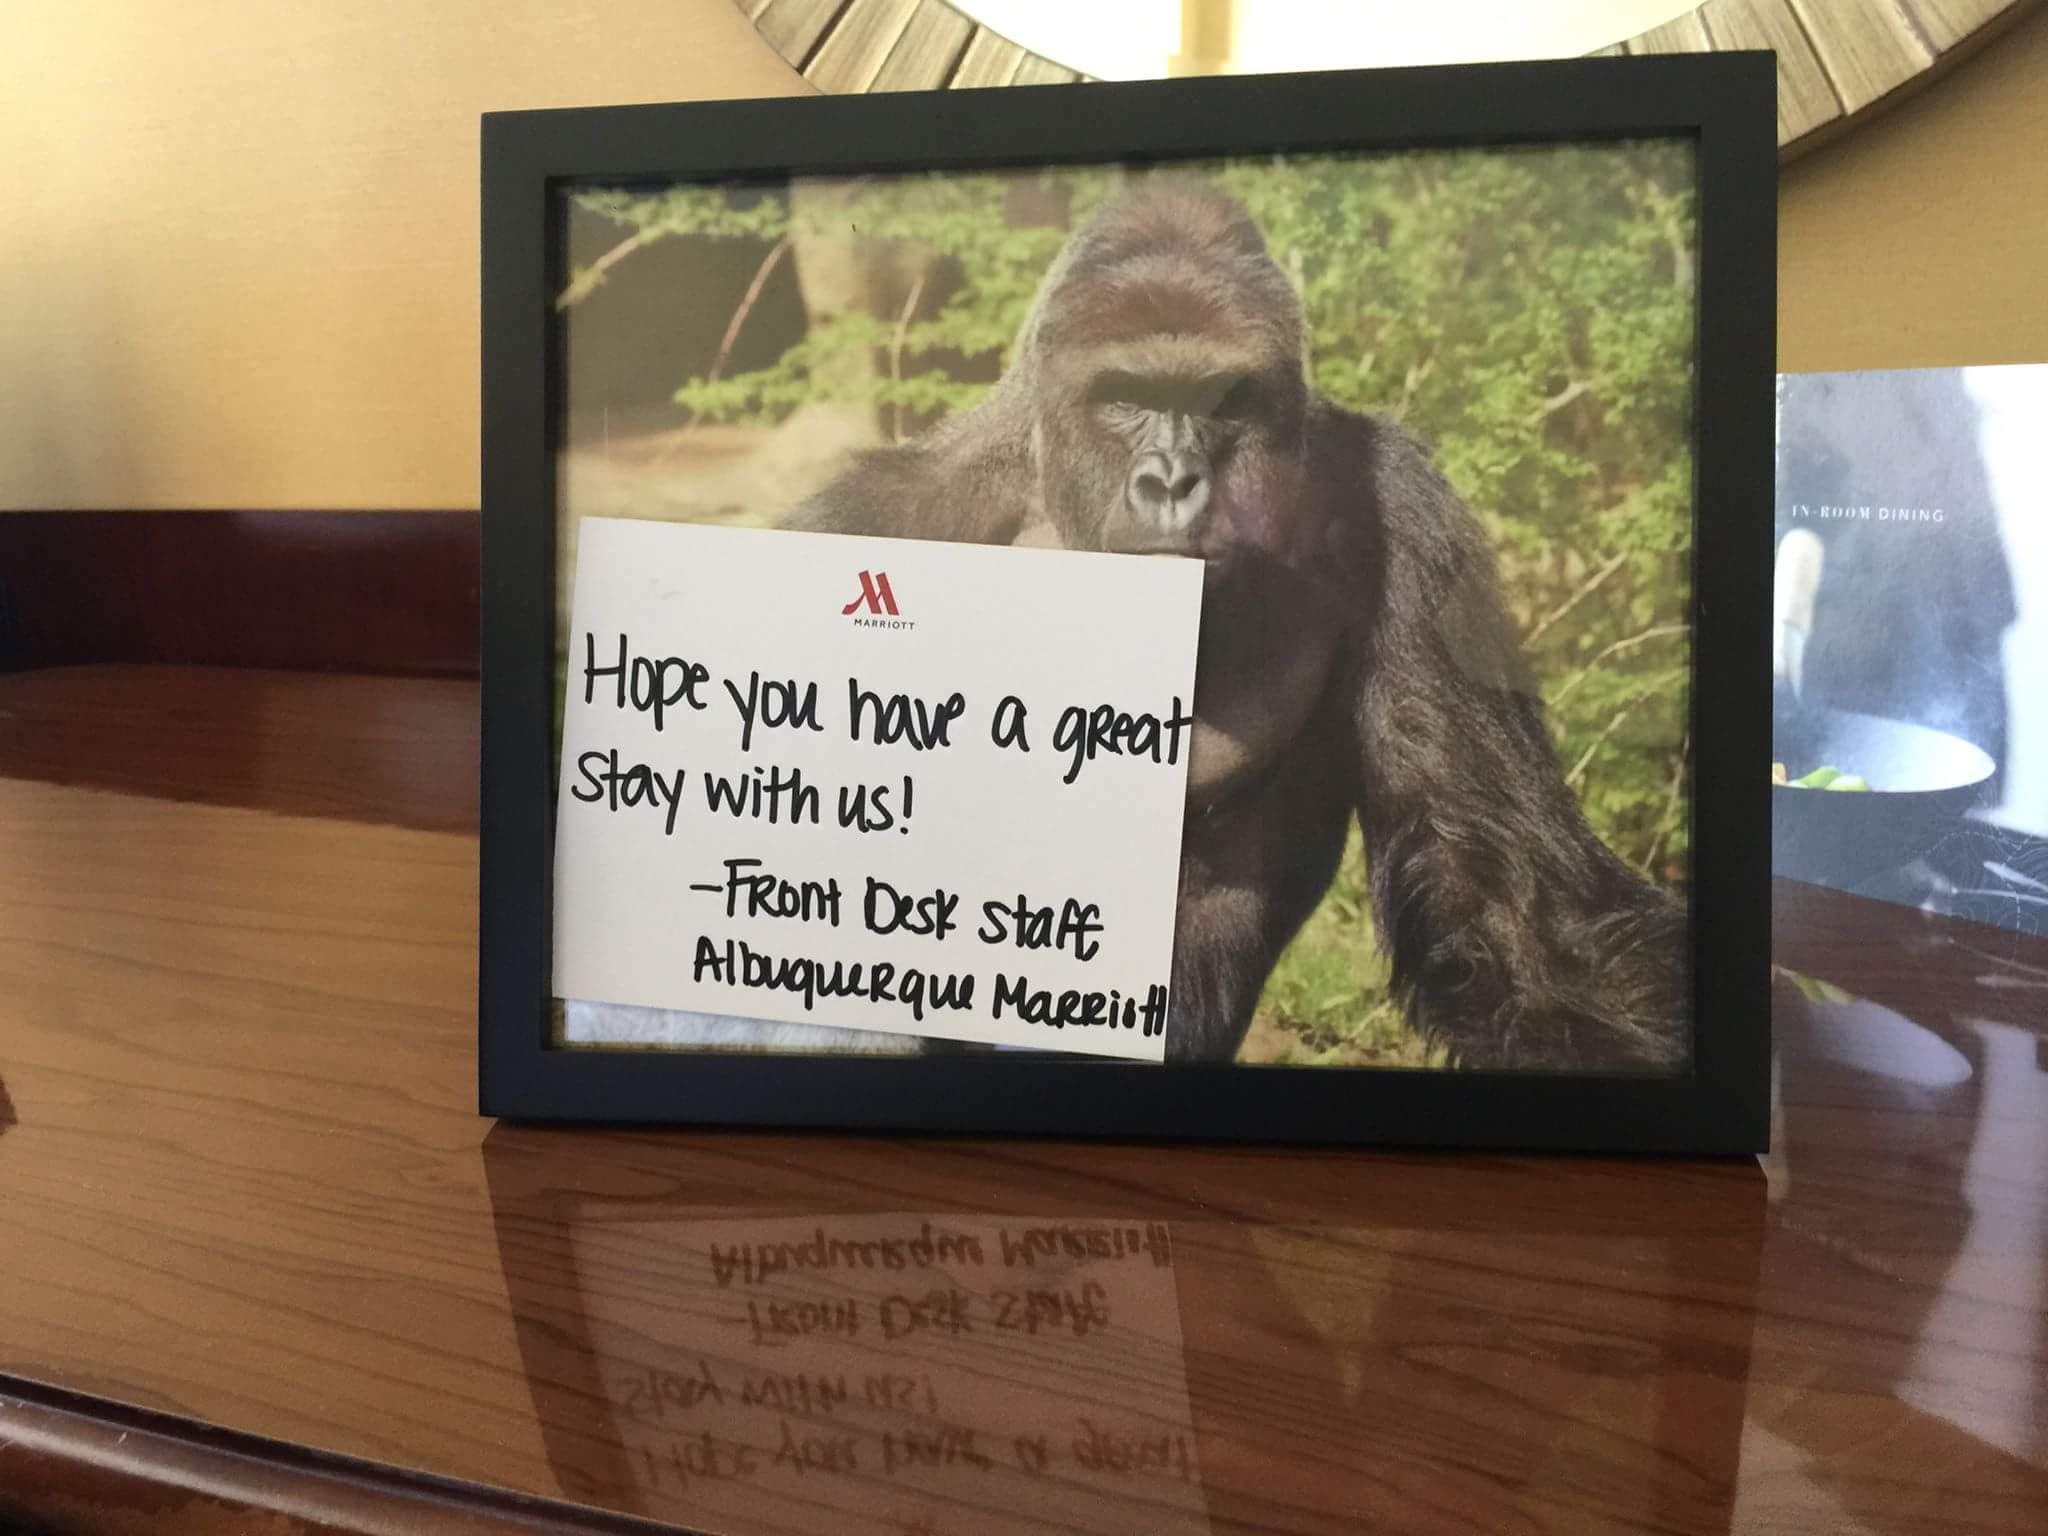 My friend requested a framed picture of Harambe when he made his room reservation. They delivered.